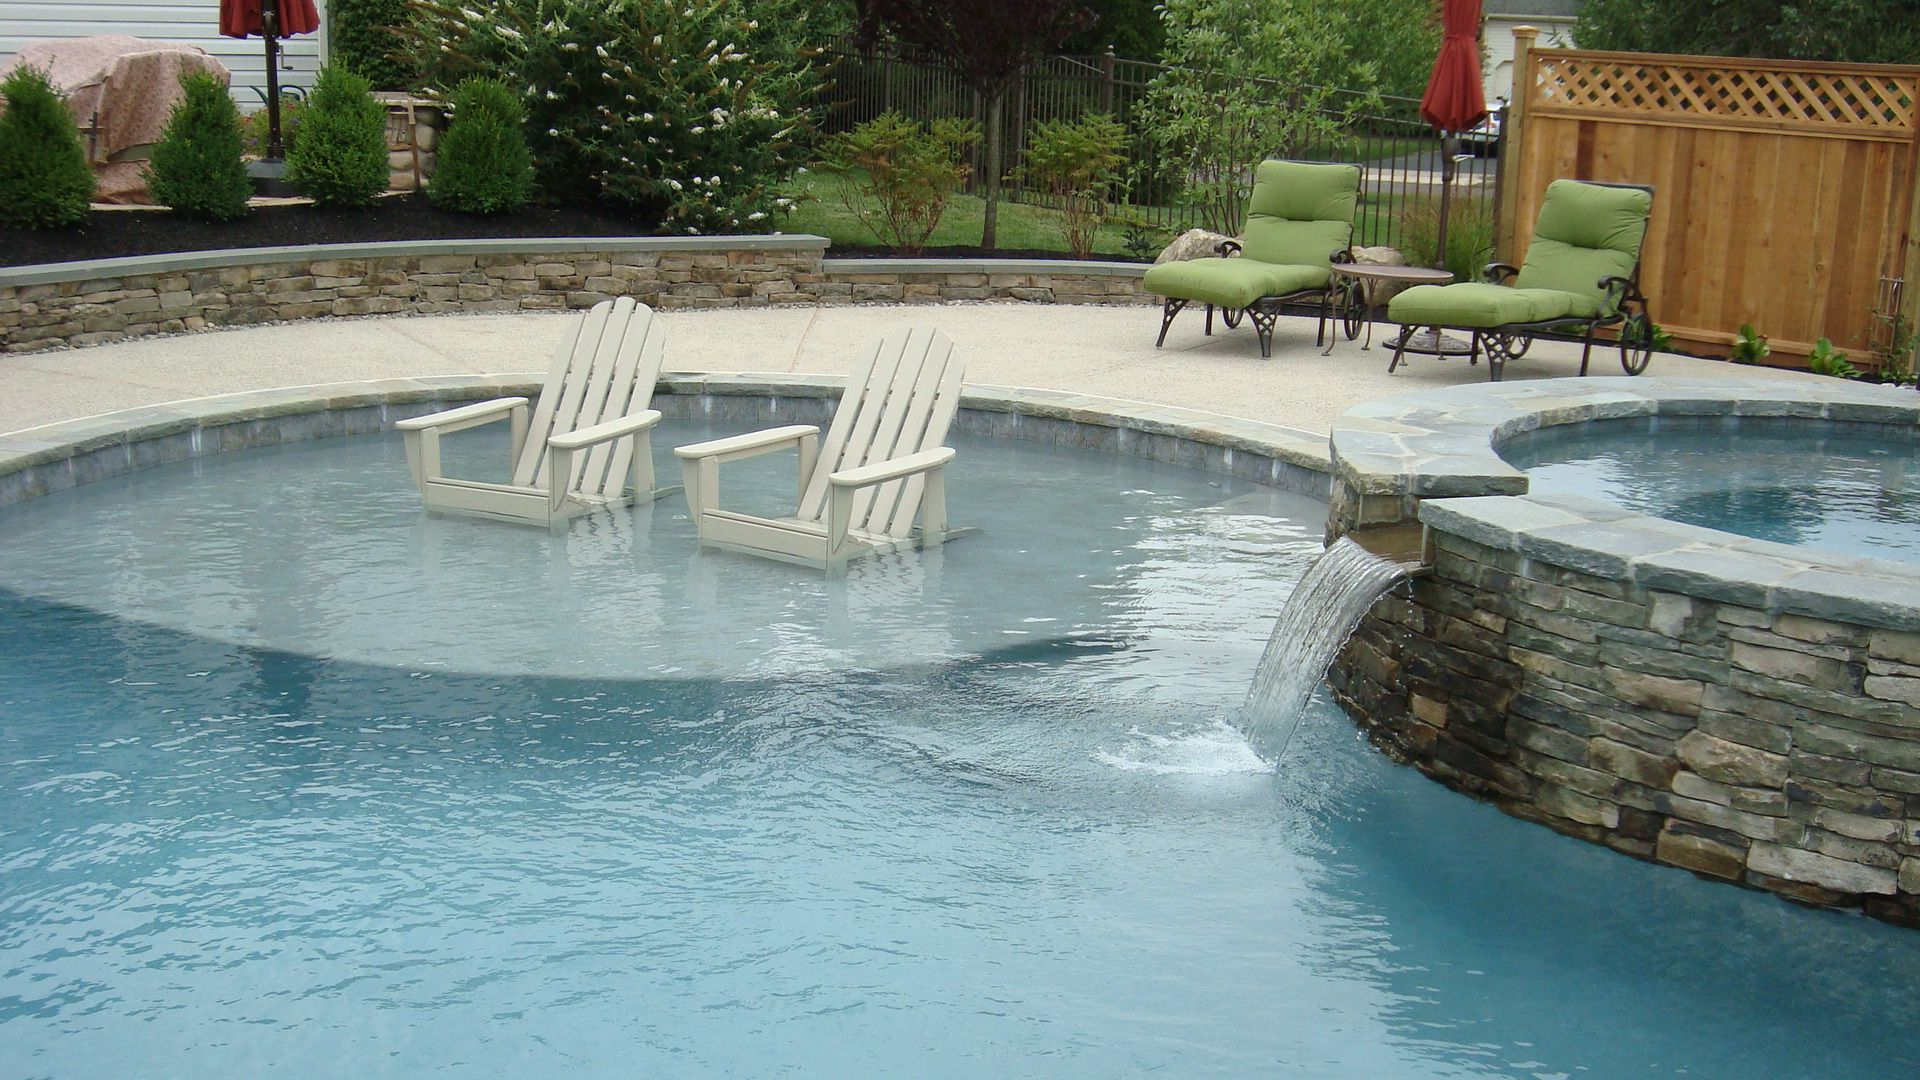 Jacuzzi Pool Ideas Custom Swimming Pool With Sun Shelf And Raised Spa Home Pool